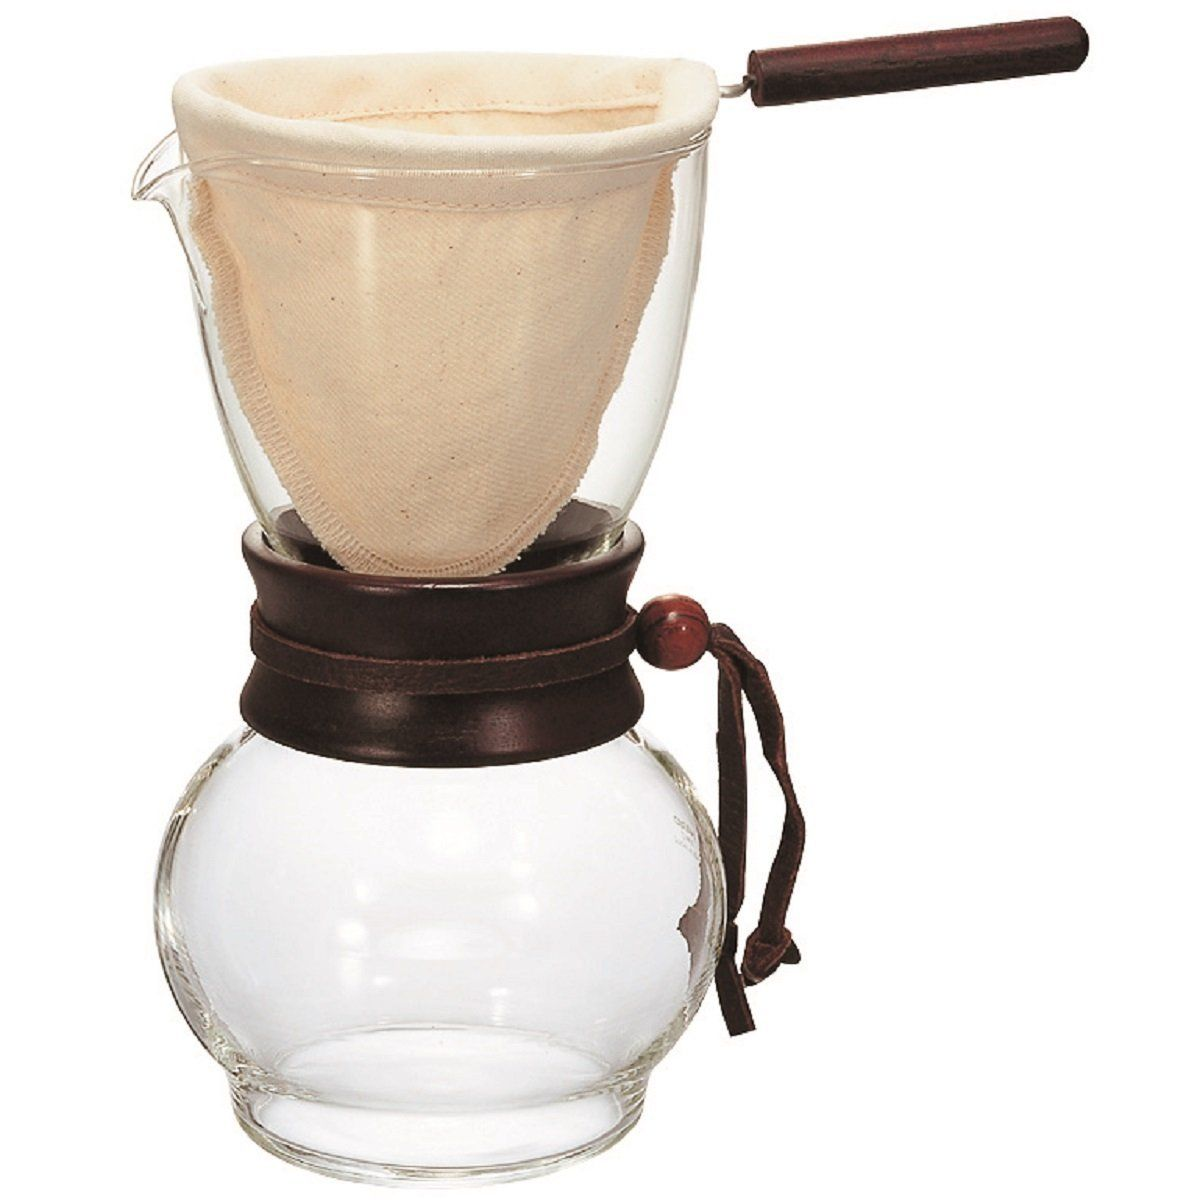 Hario Drip Pot 480Ml -- Insider's special review you can't miss. Read more  : Coffee Maker